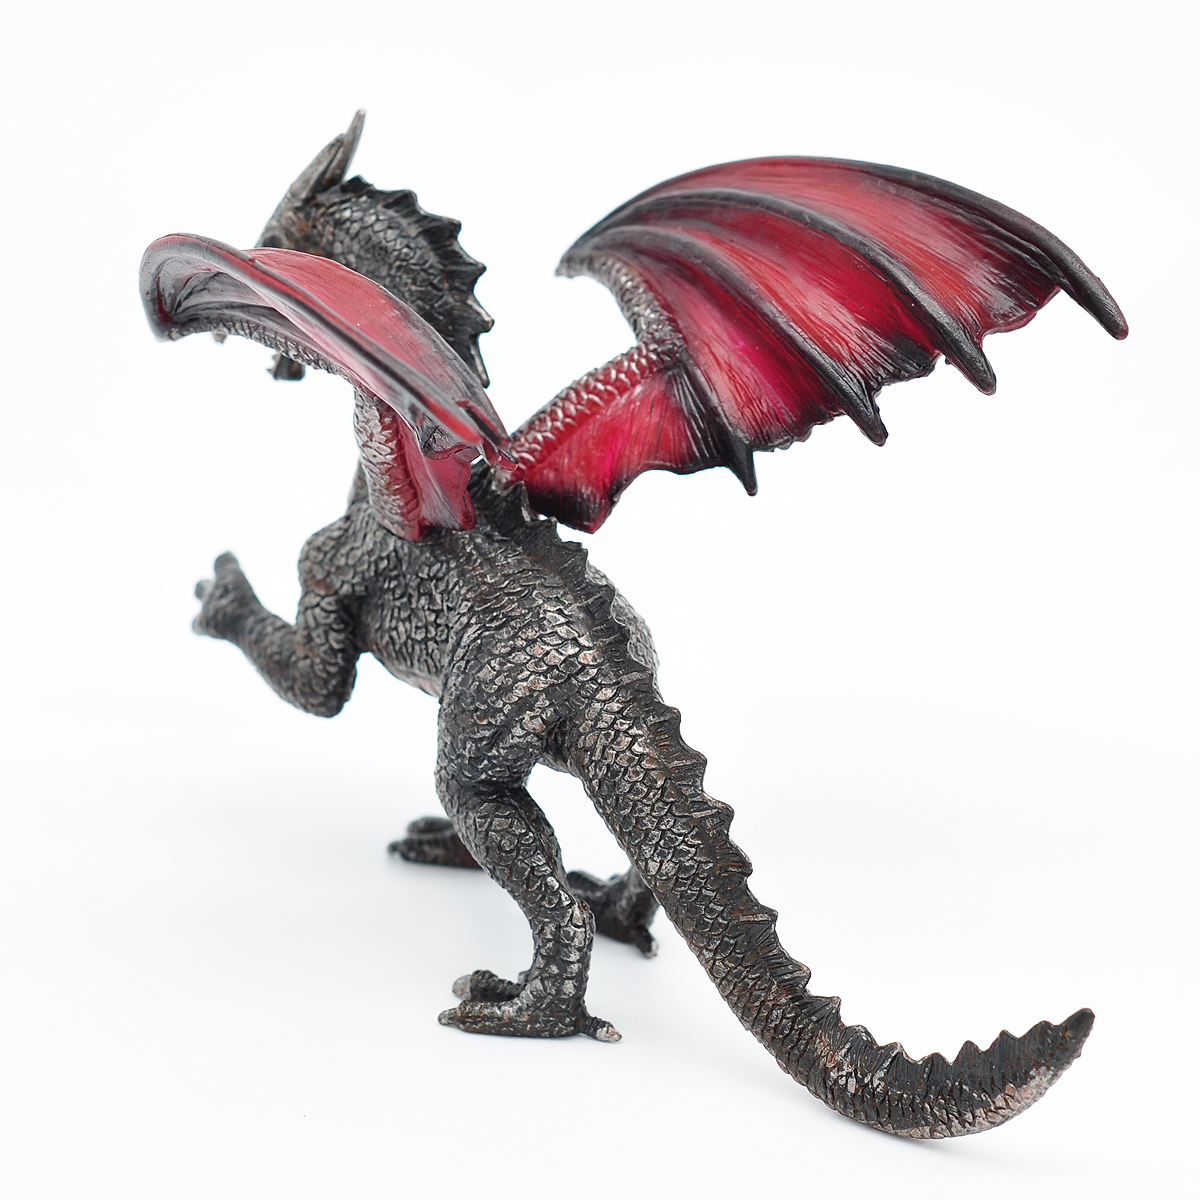 D&D Dragon Miniature Pre-Painted 7.5  Long 28mm Scale Monster Mini Model for Dungeons and Dragons, Pathfinder or Any Tabletop RPG